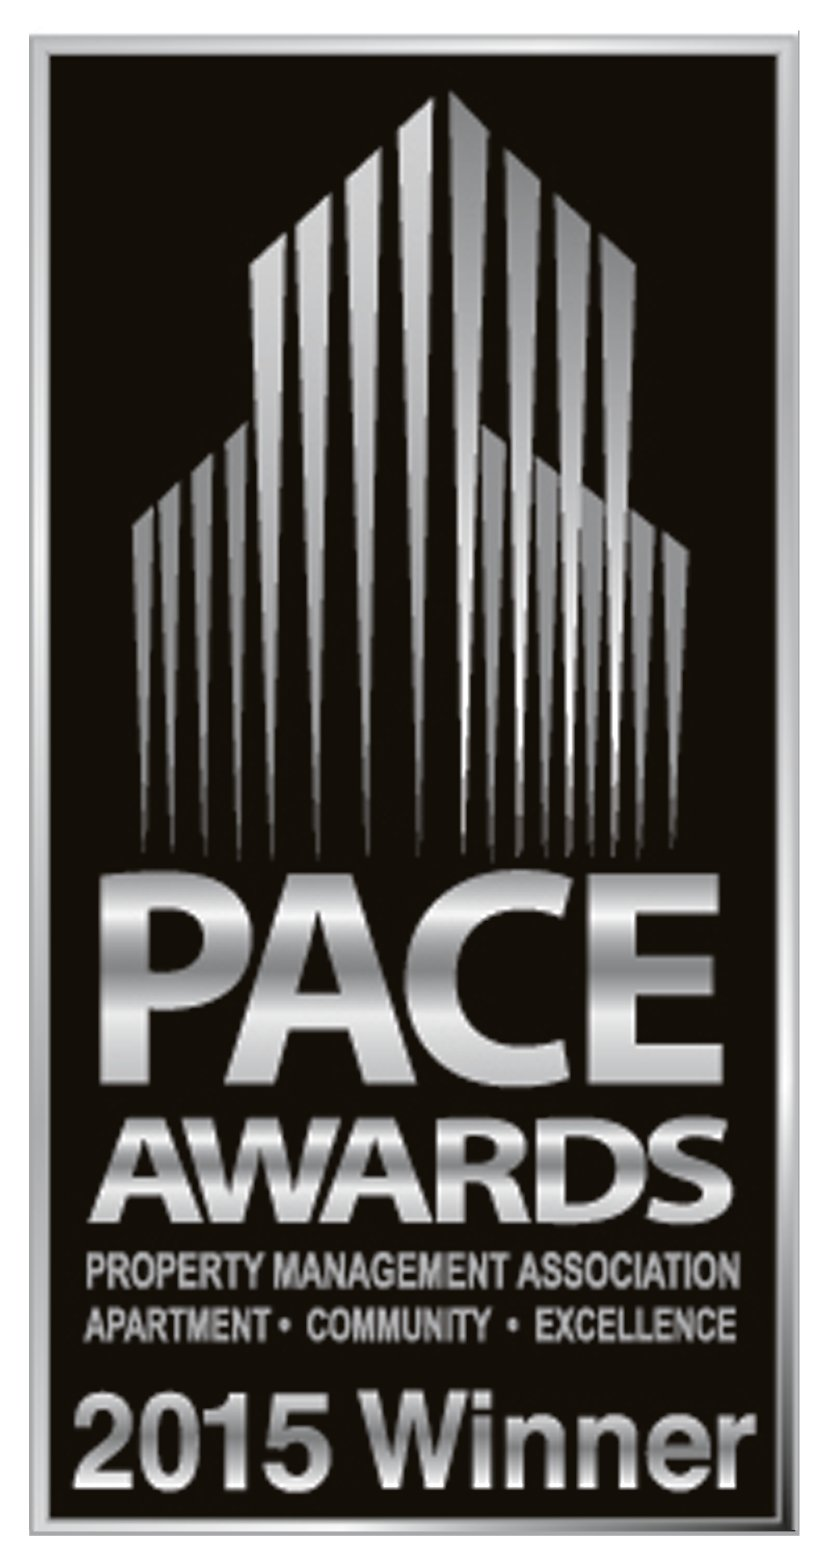 PACE Awards Logo 2015 Winner